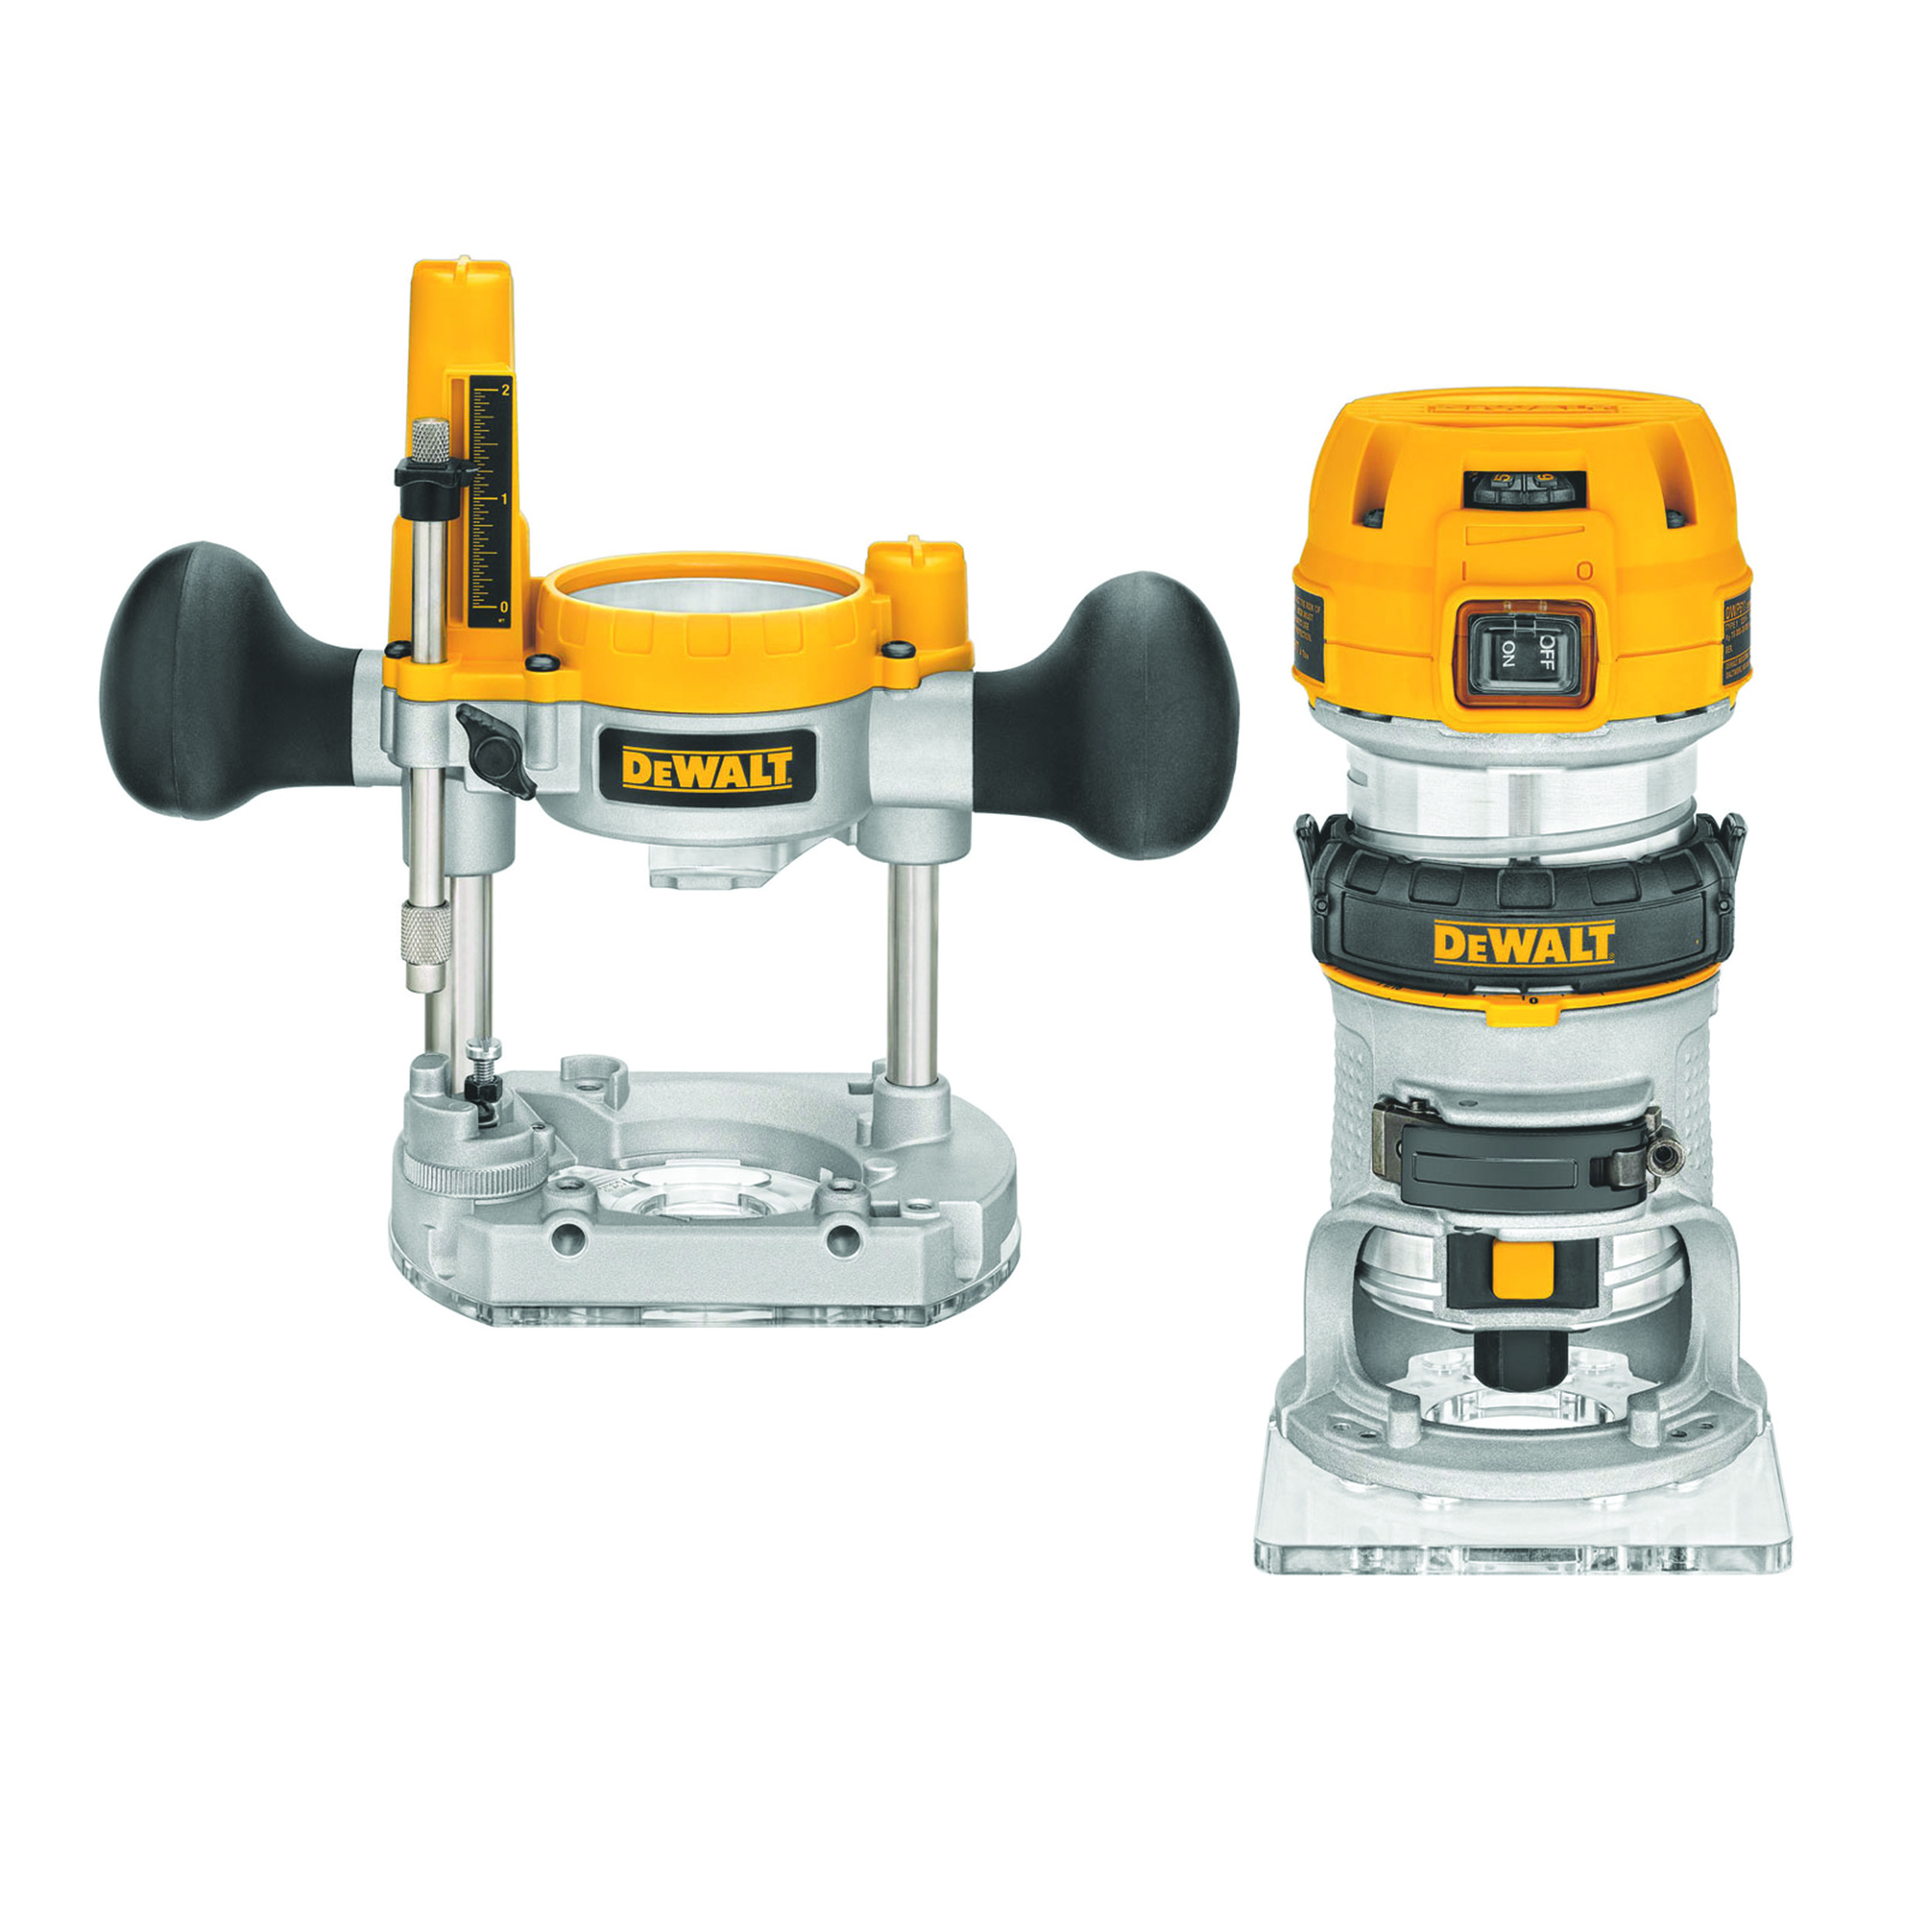 Variable Speed Compact Router with LEDs and Plunge Base, 1.25HP, Model DWP611PK